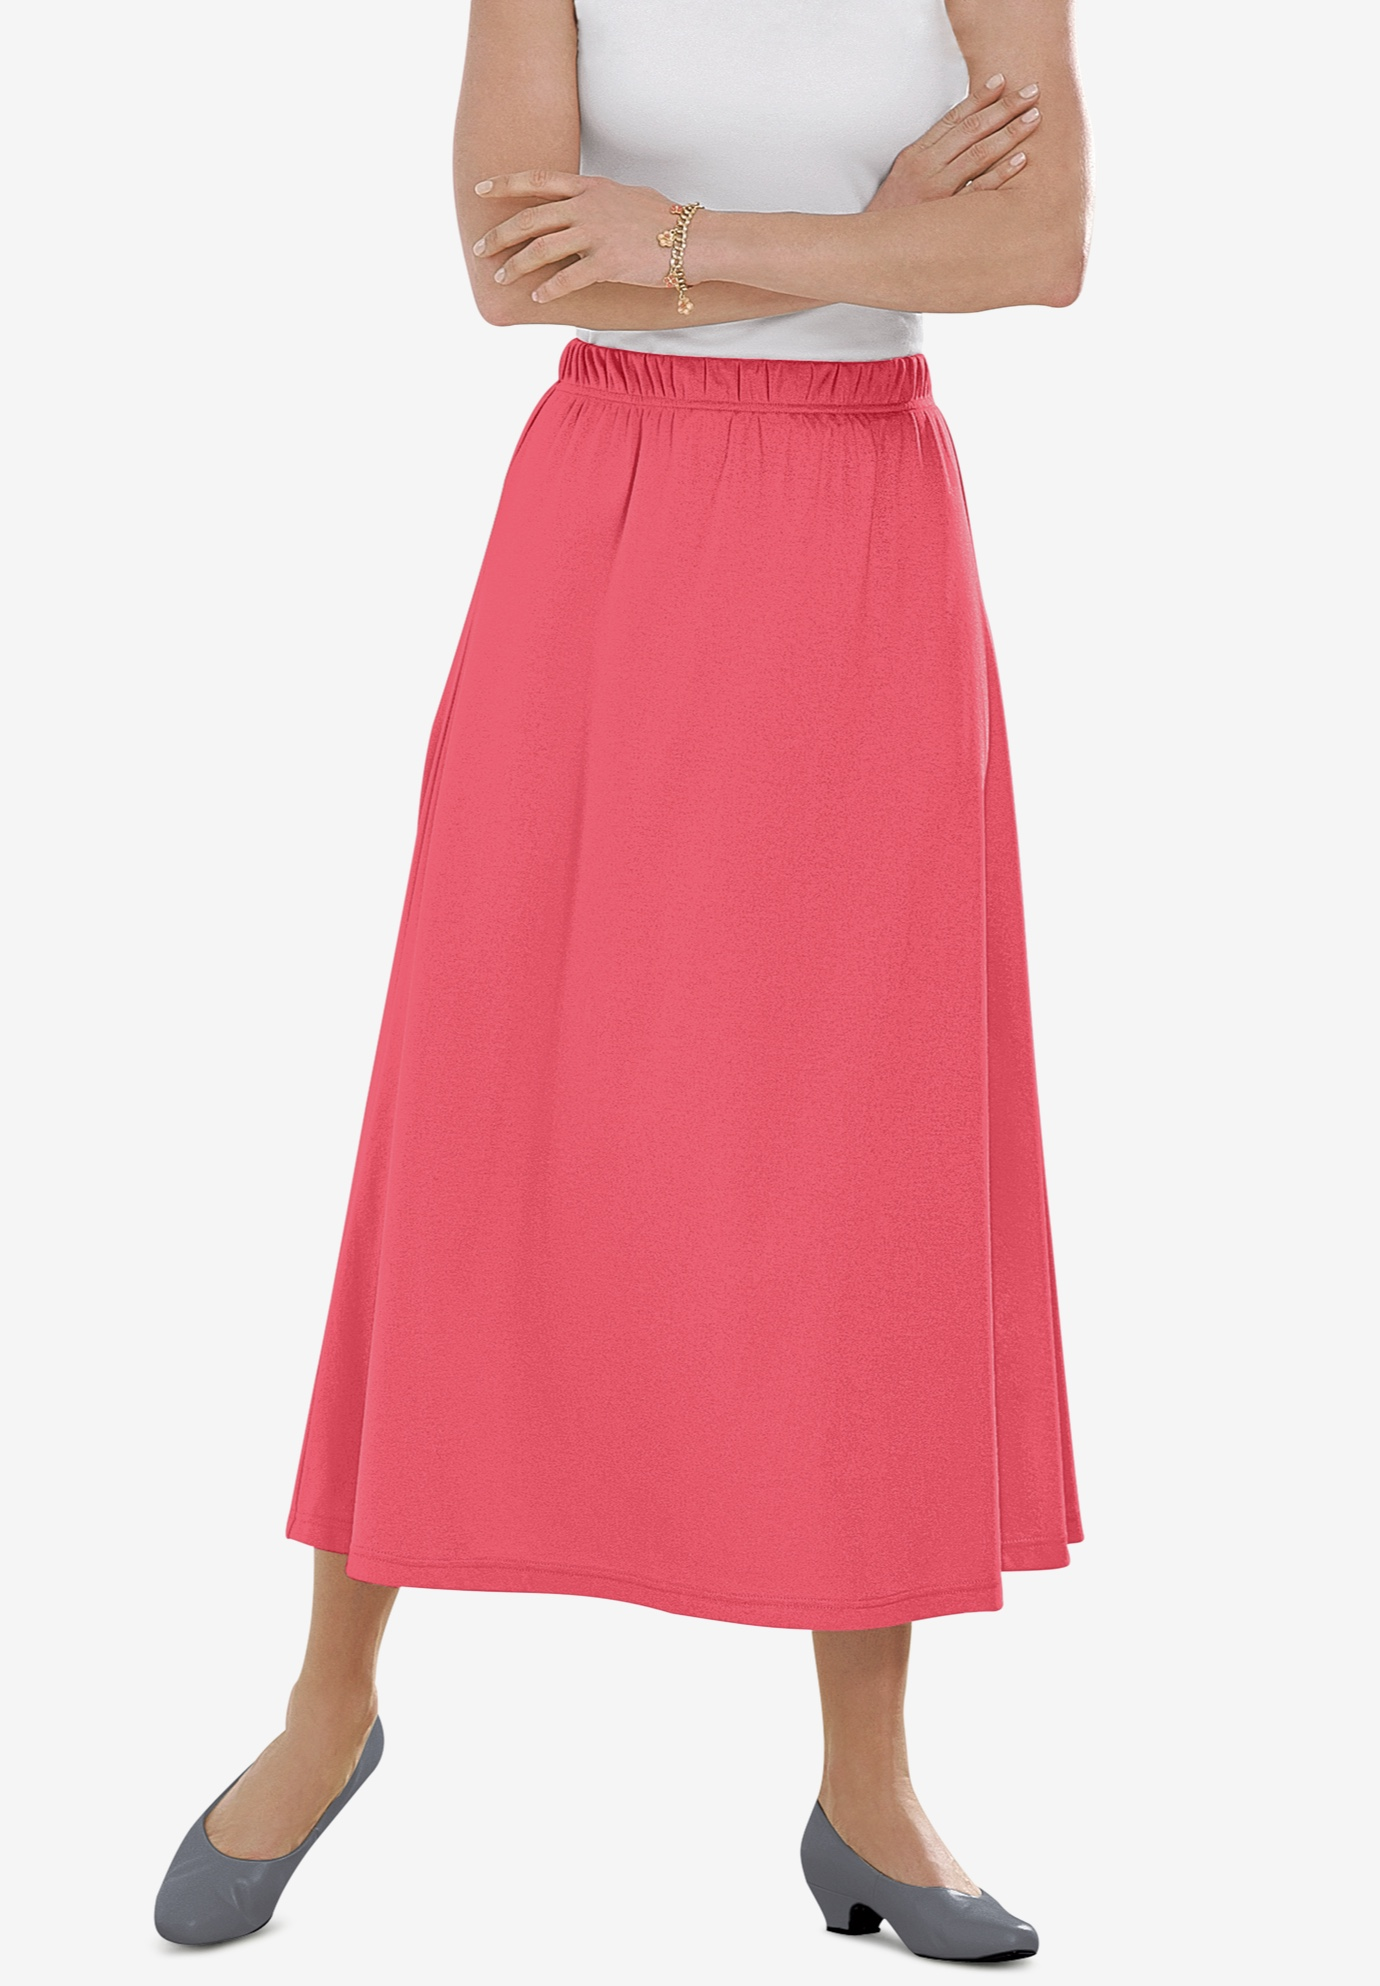 7-Day Knit A-Line Skirt,